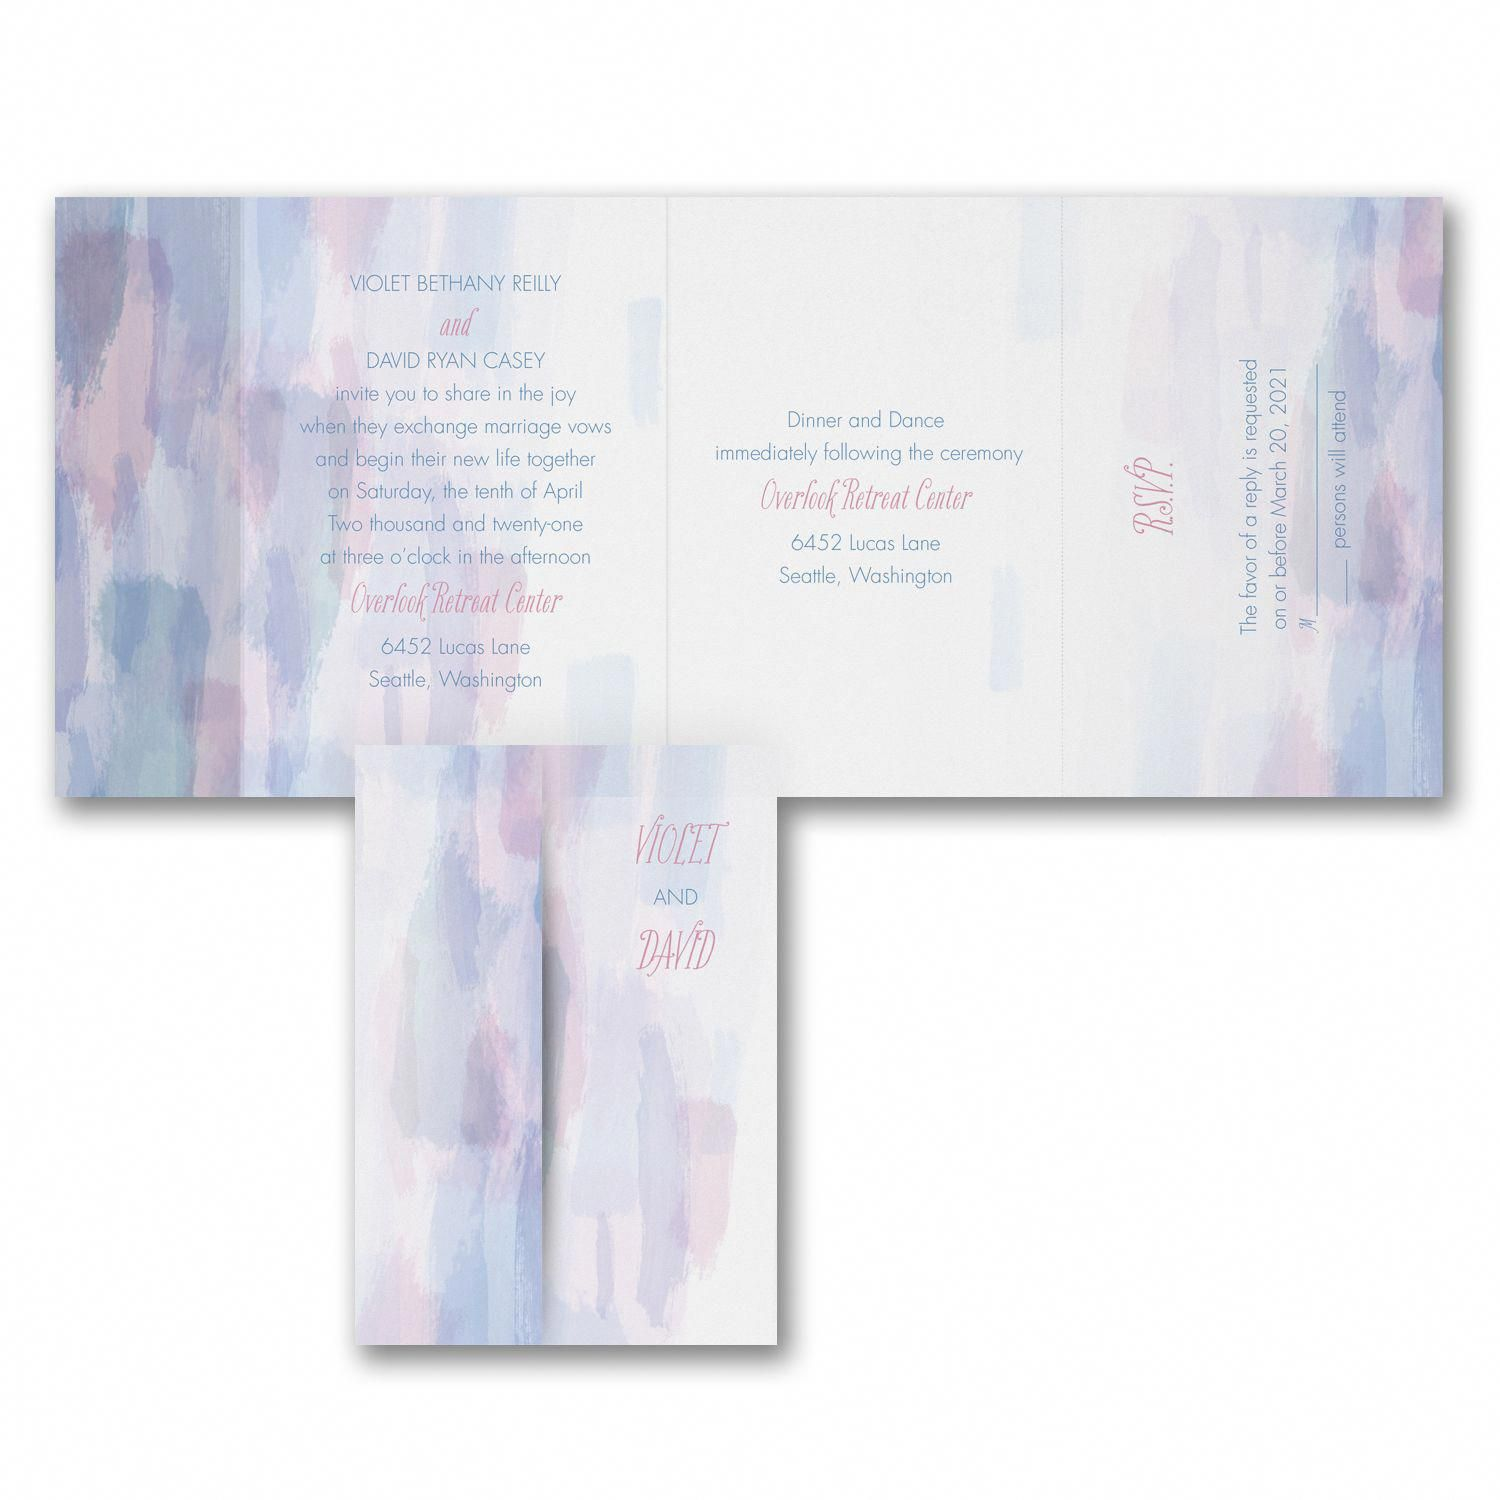 Most Expensive Wedding Invitations: Expensive Wedding Gifts For Groom Product ID:5162086398